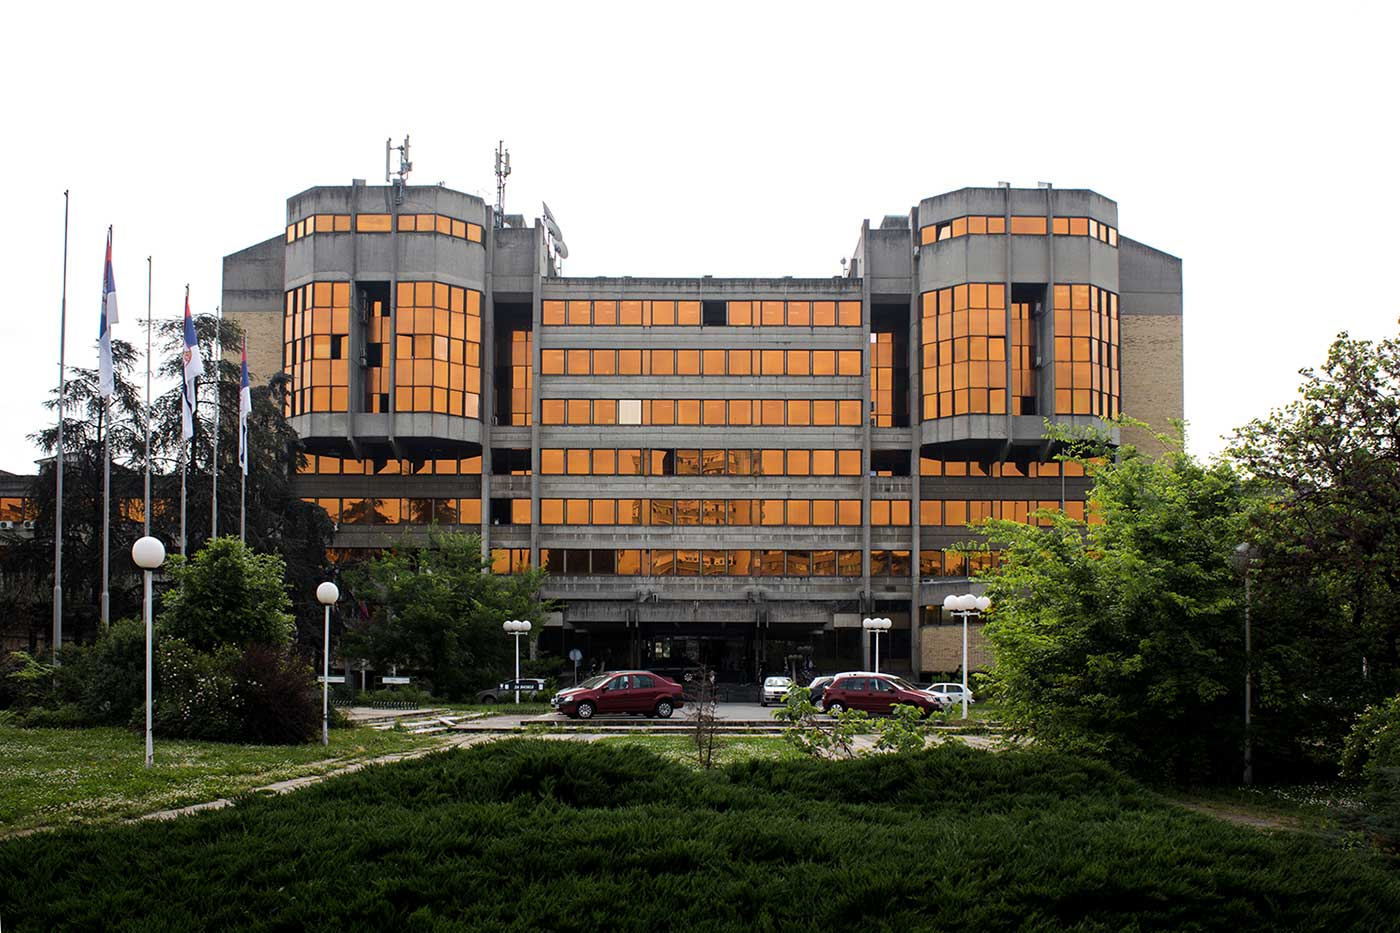 SIV 3 (Ljupko Ćurčić, 1975): An Administrative building in Novi Beograd that now houses the Belgrade Stock Exchange.